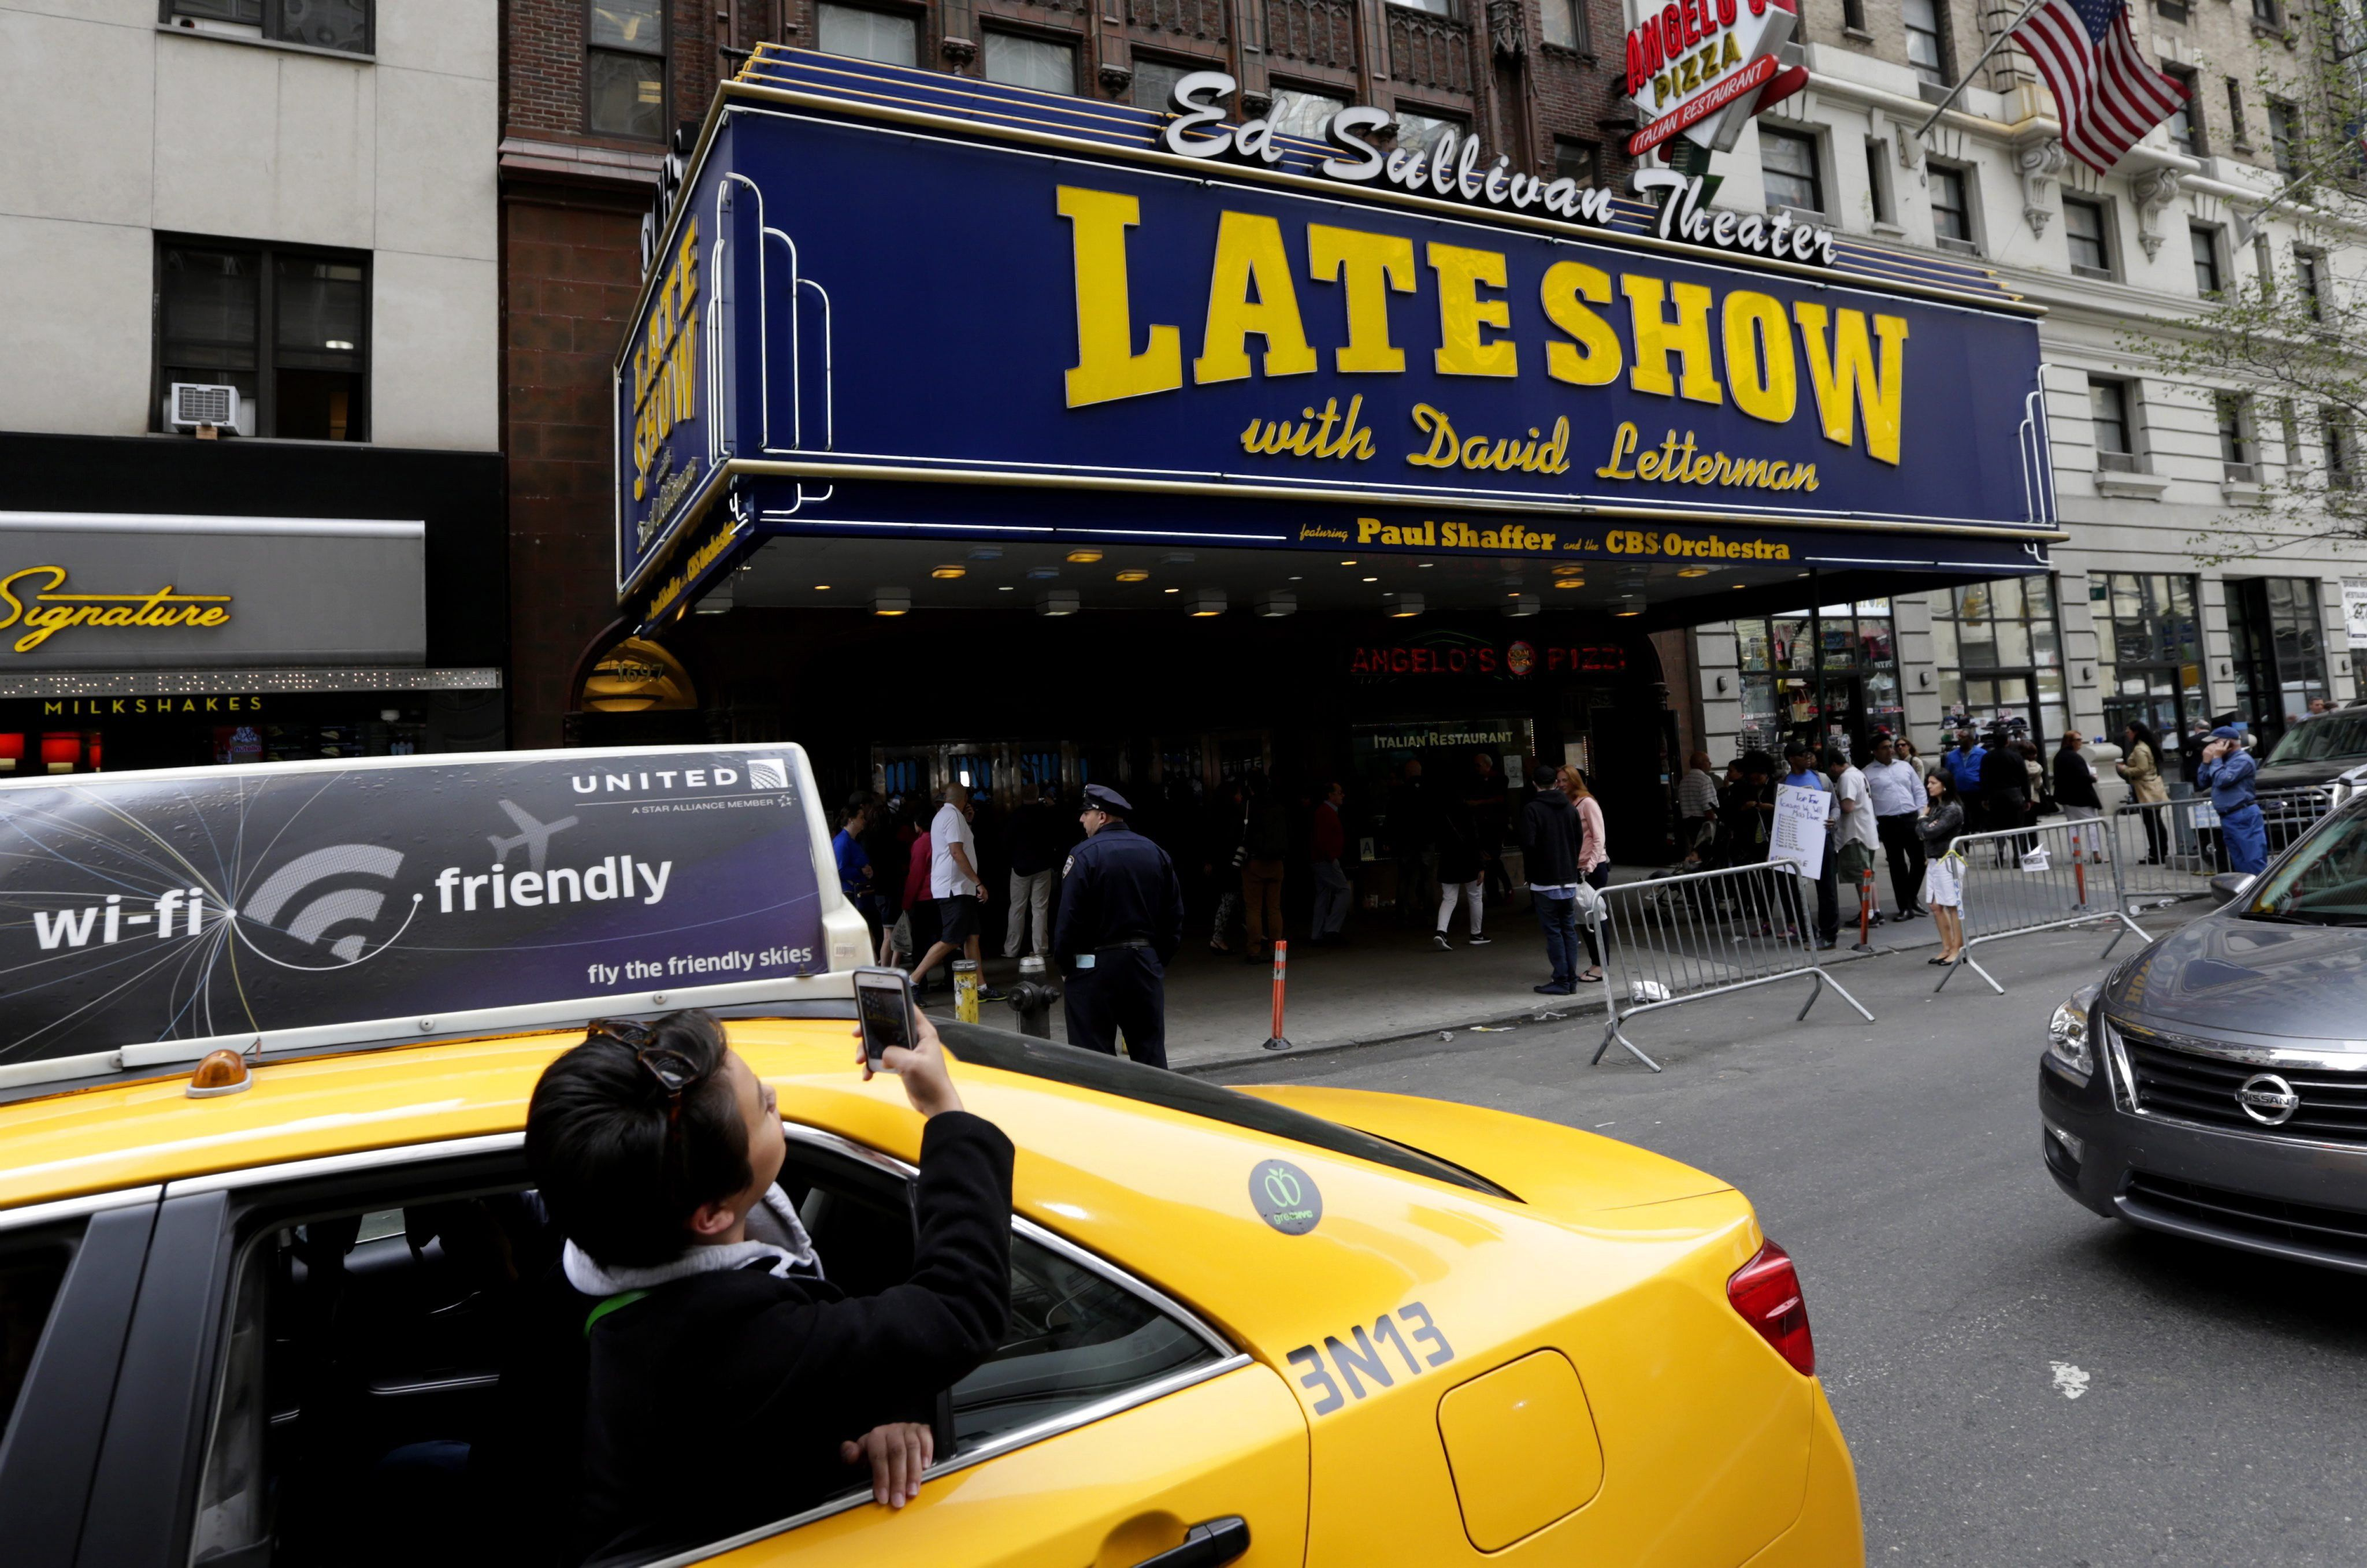 The Late Show with David Letterman - EPA